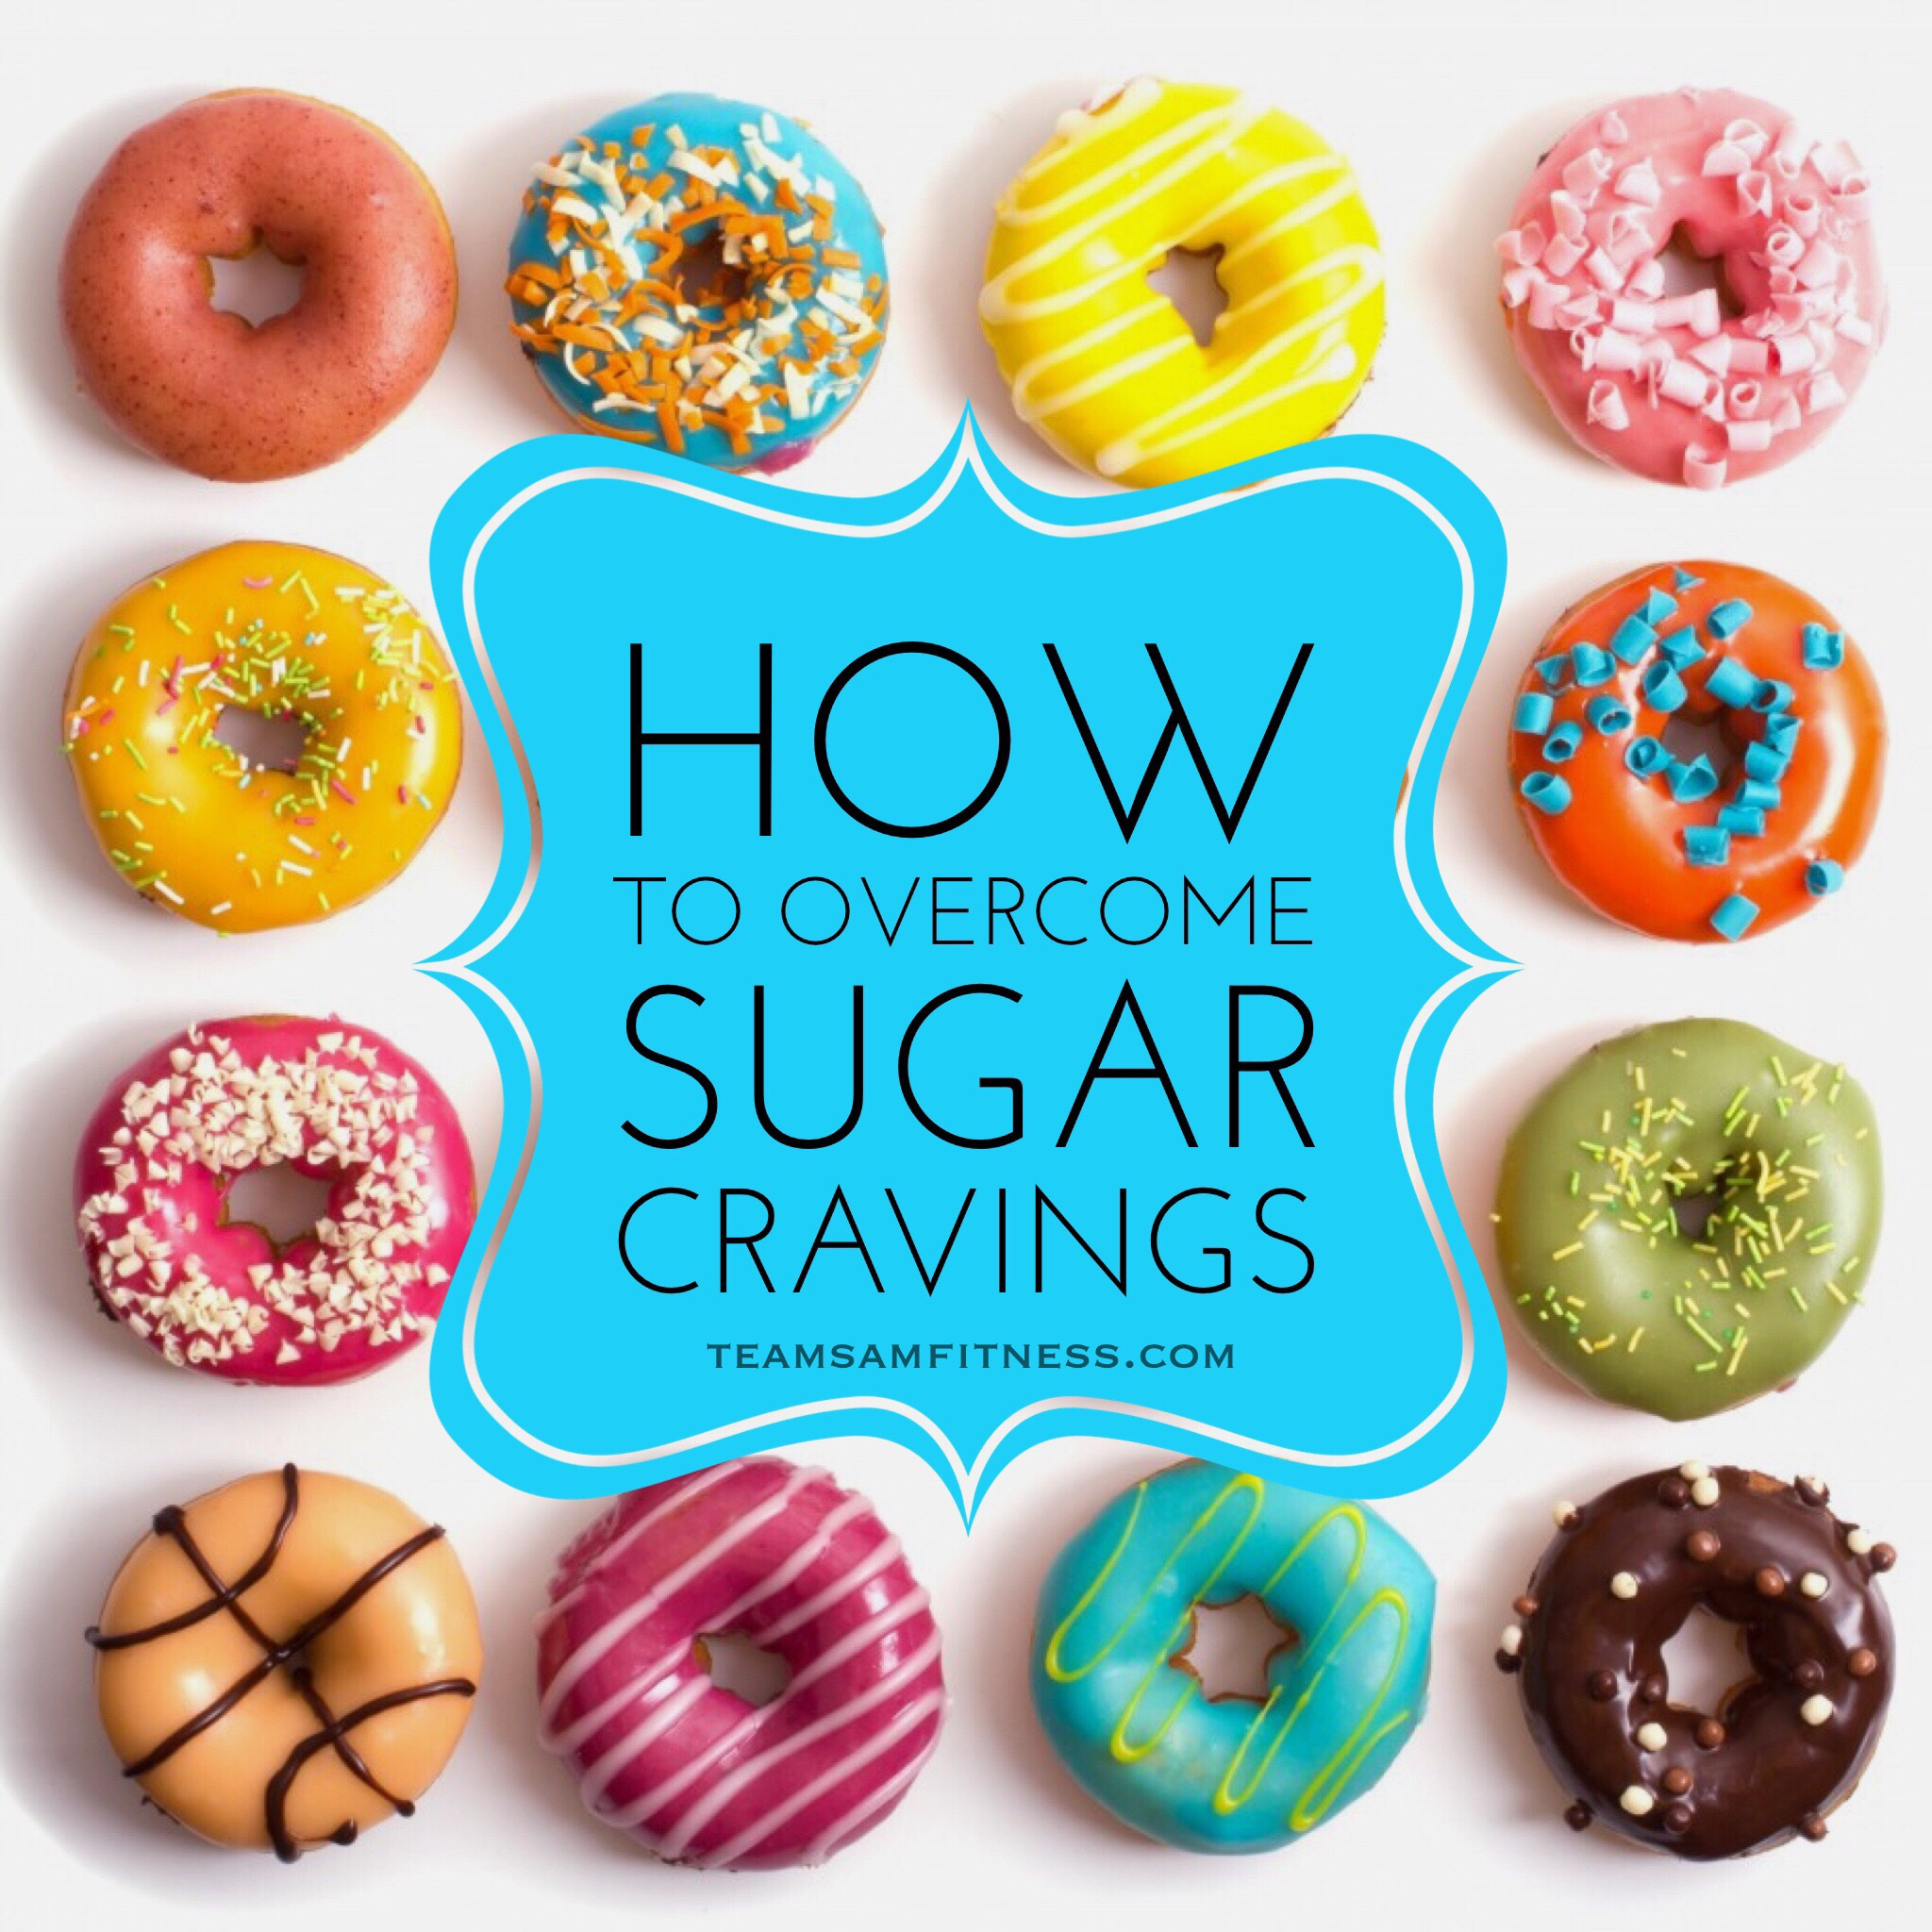 How to Overcome Sugar Cravings by TeamSam Fitness